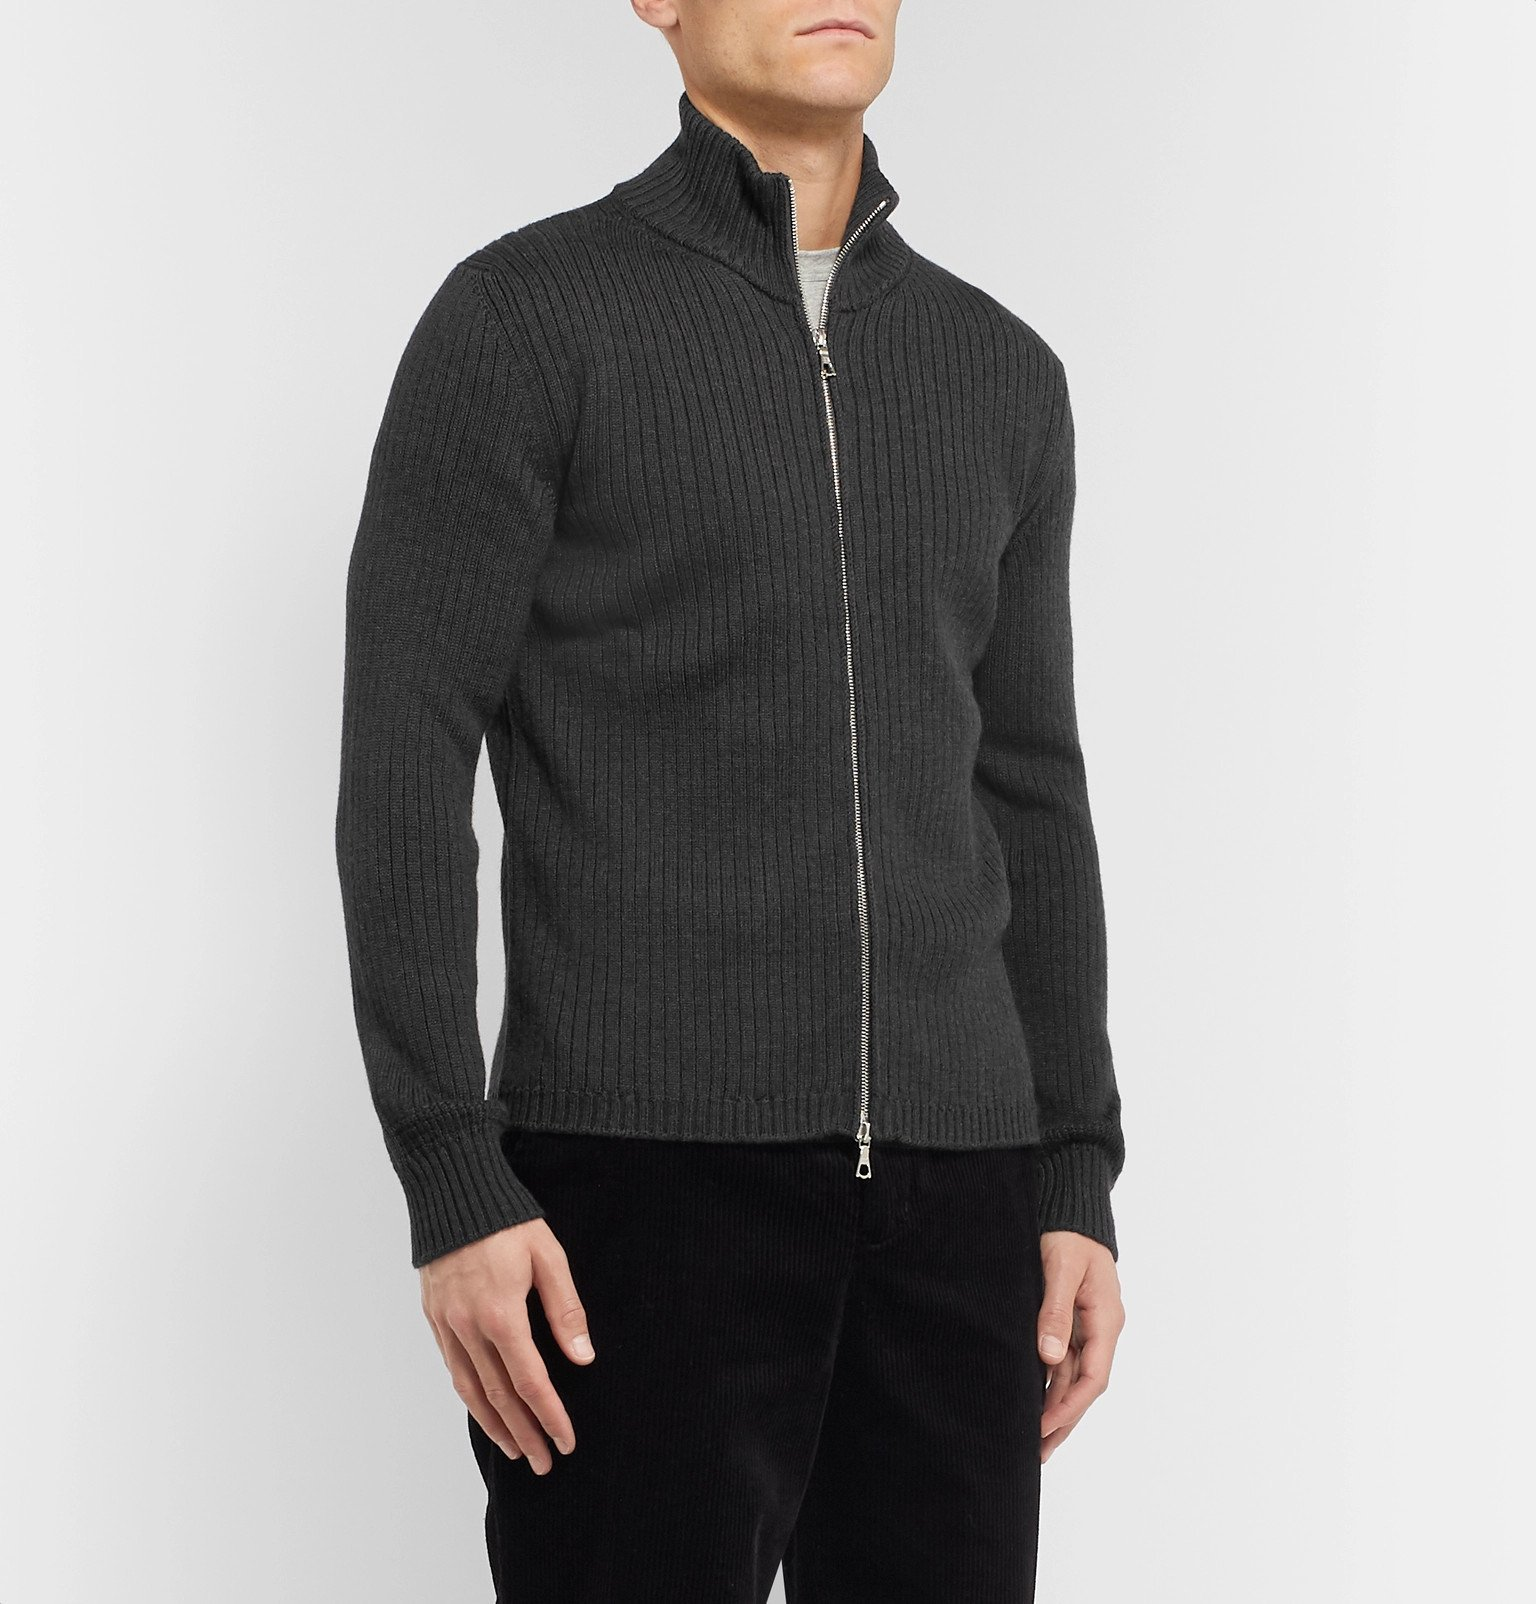 Officine Generale - Ribbed Merino Wool Zip-Up Sweater - Gray